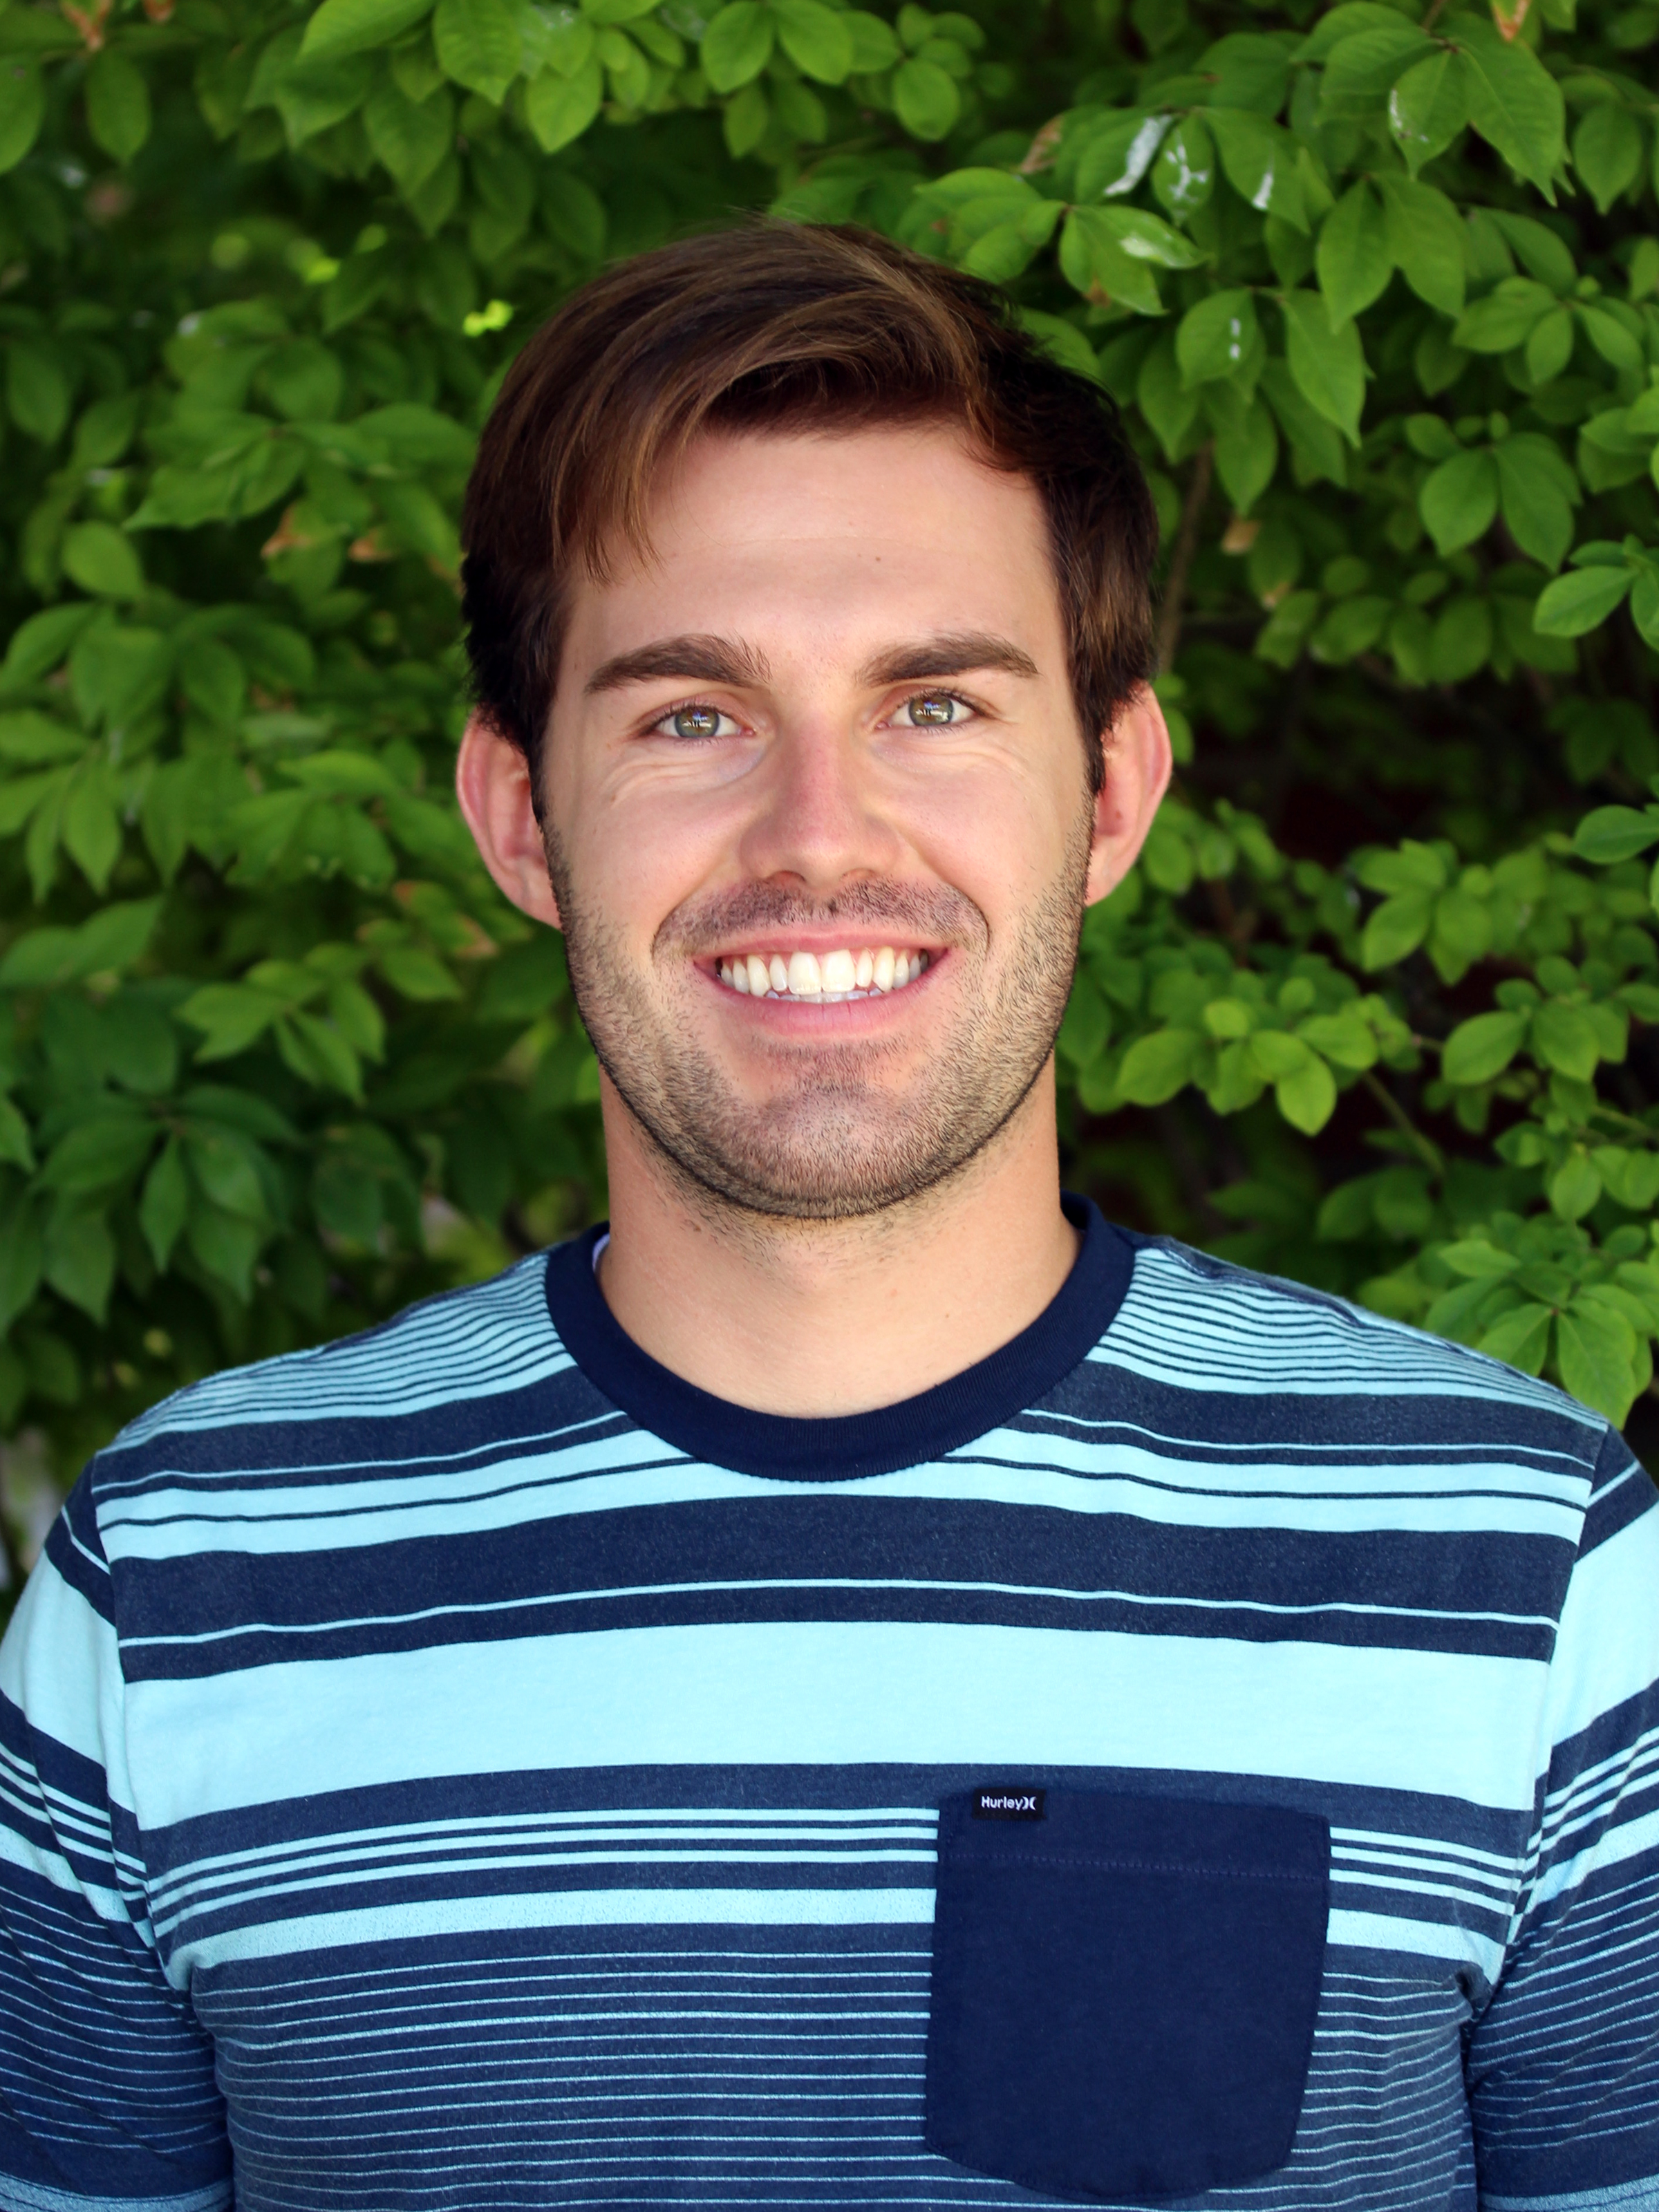 Thomas Brown. Research Assistant   Thomas Brown was born and raised in Salt Lake City, Utah. He is currently a junior at the University of Utah, studying Biomedical Engineering and Spanish with the hopes of becoming a doctor one day. He enjoys being involved with research as he learns how scientific discovery and development increase our understanding of life and its processes to ultimately improve society. In his free time he enjoys playing soccer, running, hiking, skiing, and spending time with his family.